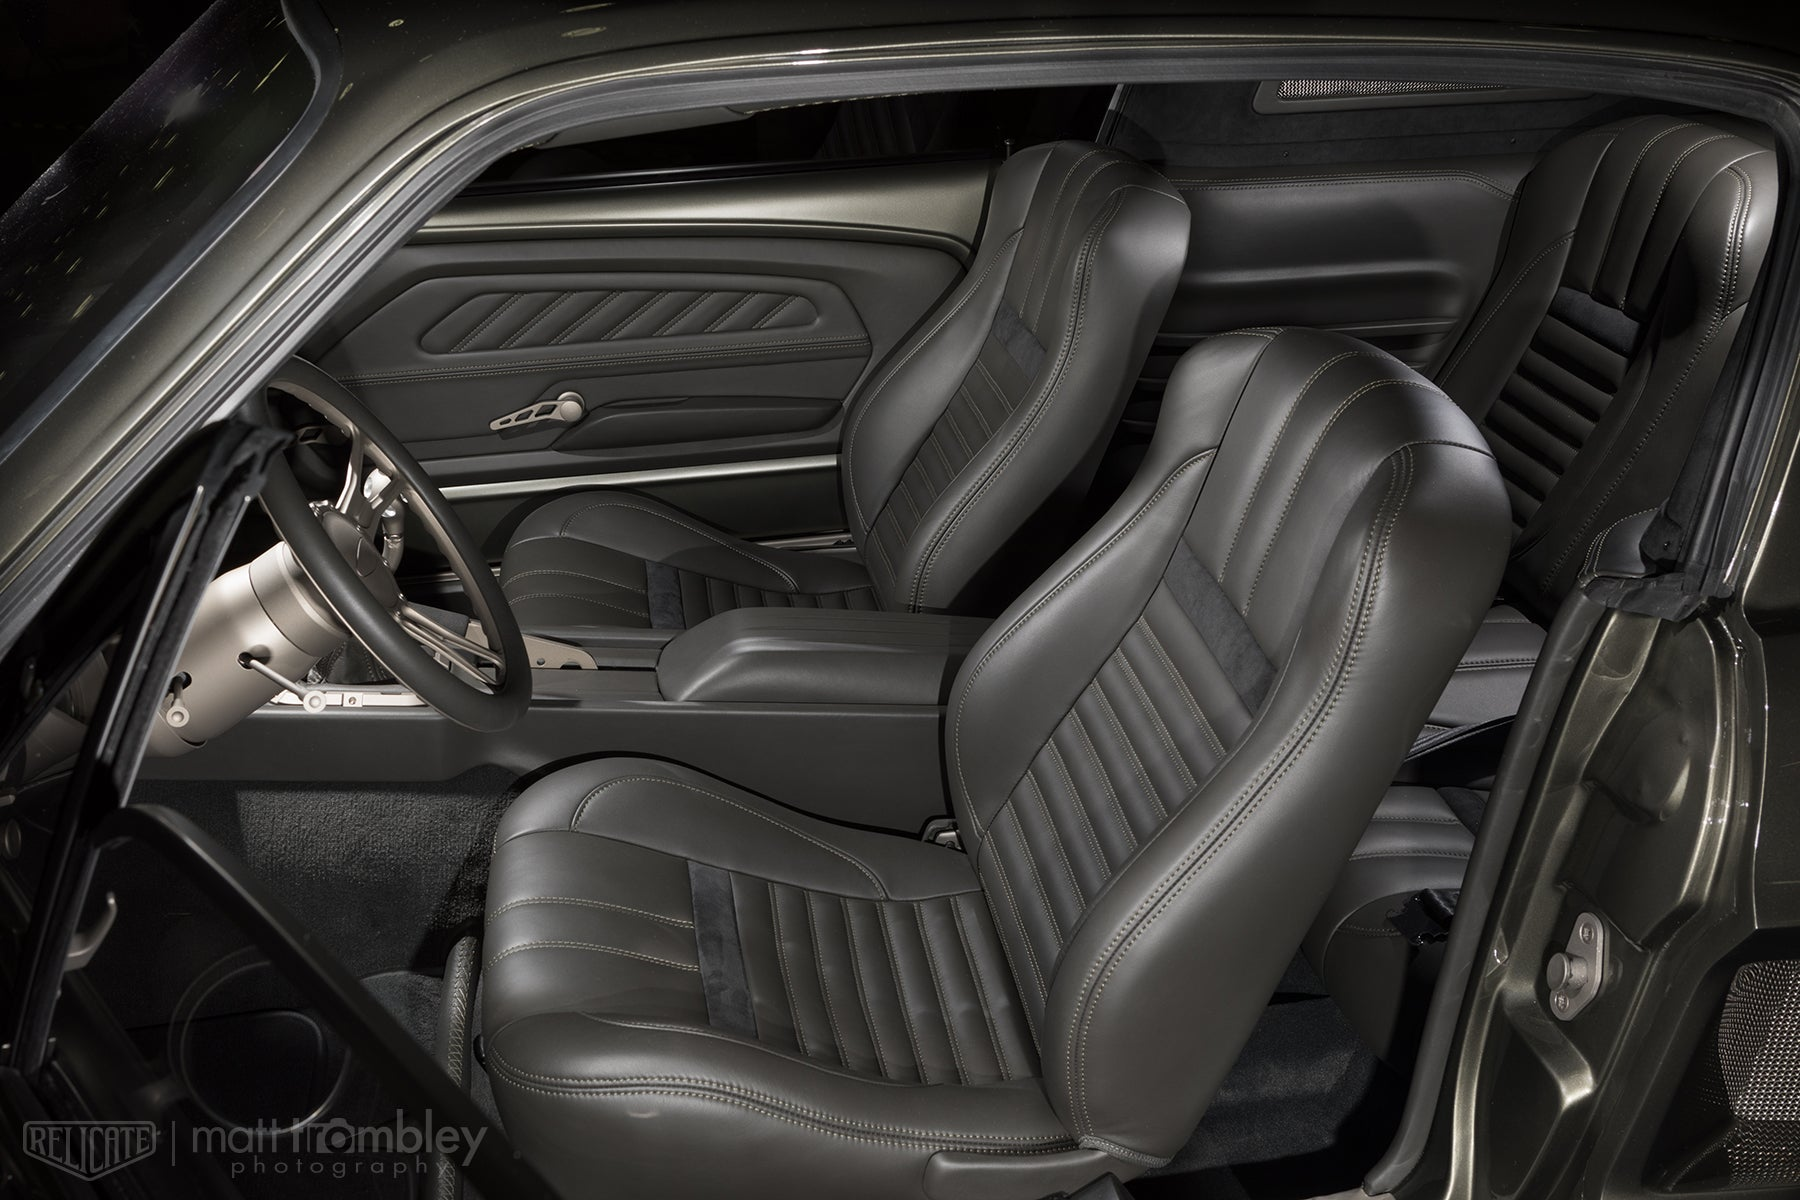 Relicate Leather 1967 Ford Mustang Interior with Alcantara Anthracite 6422